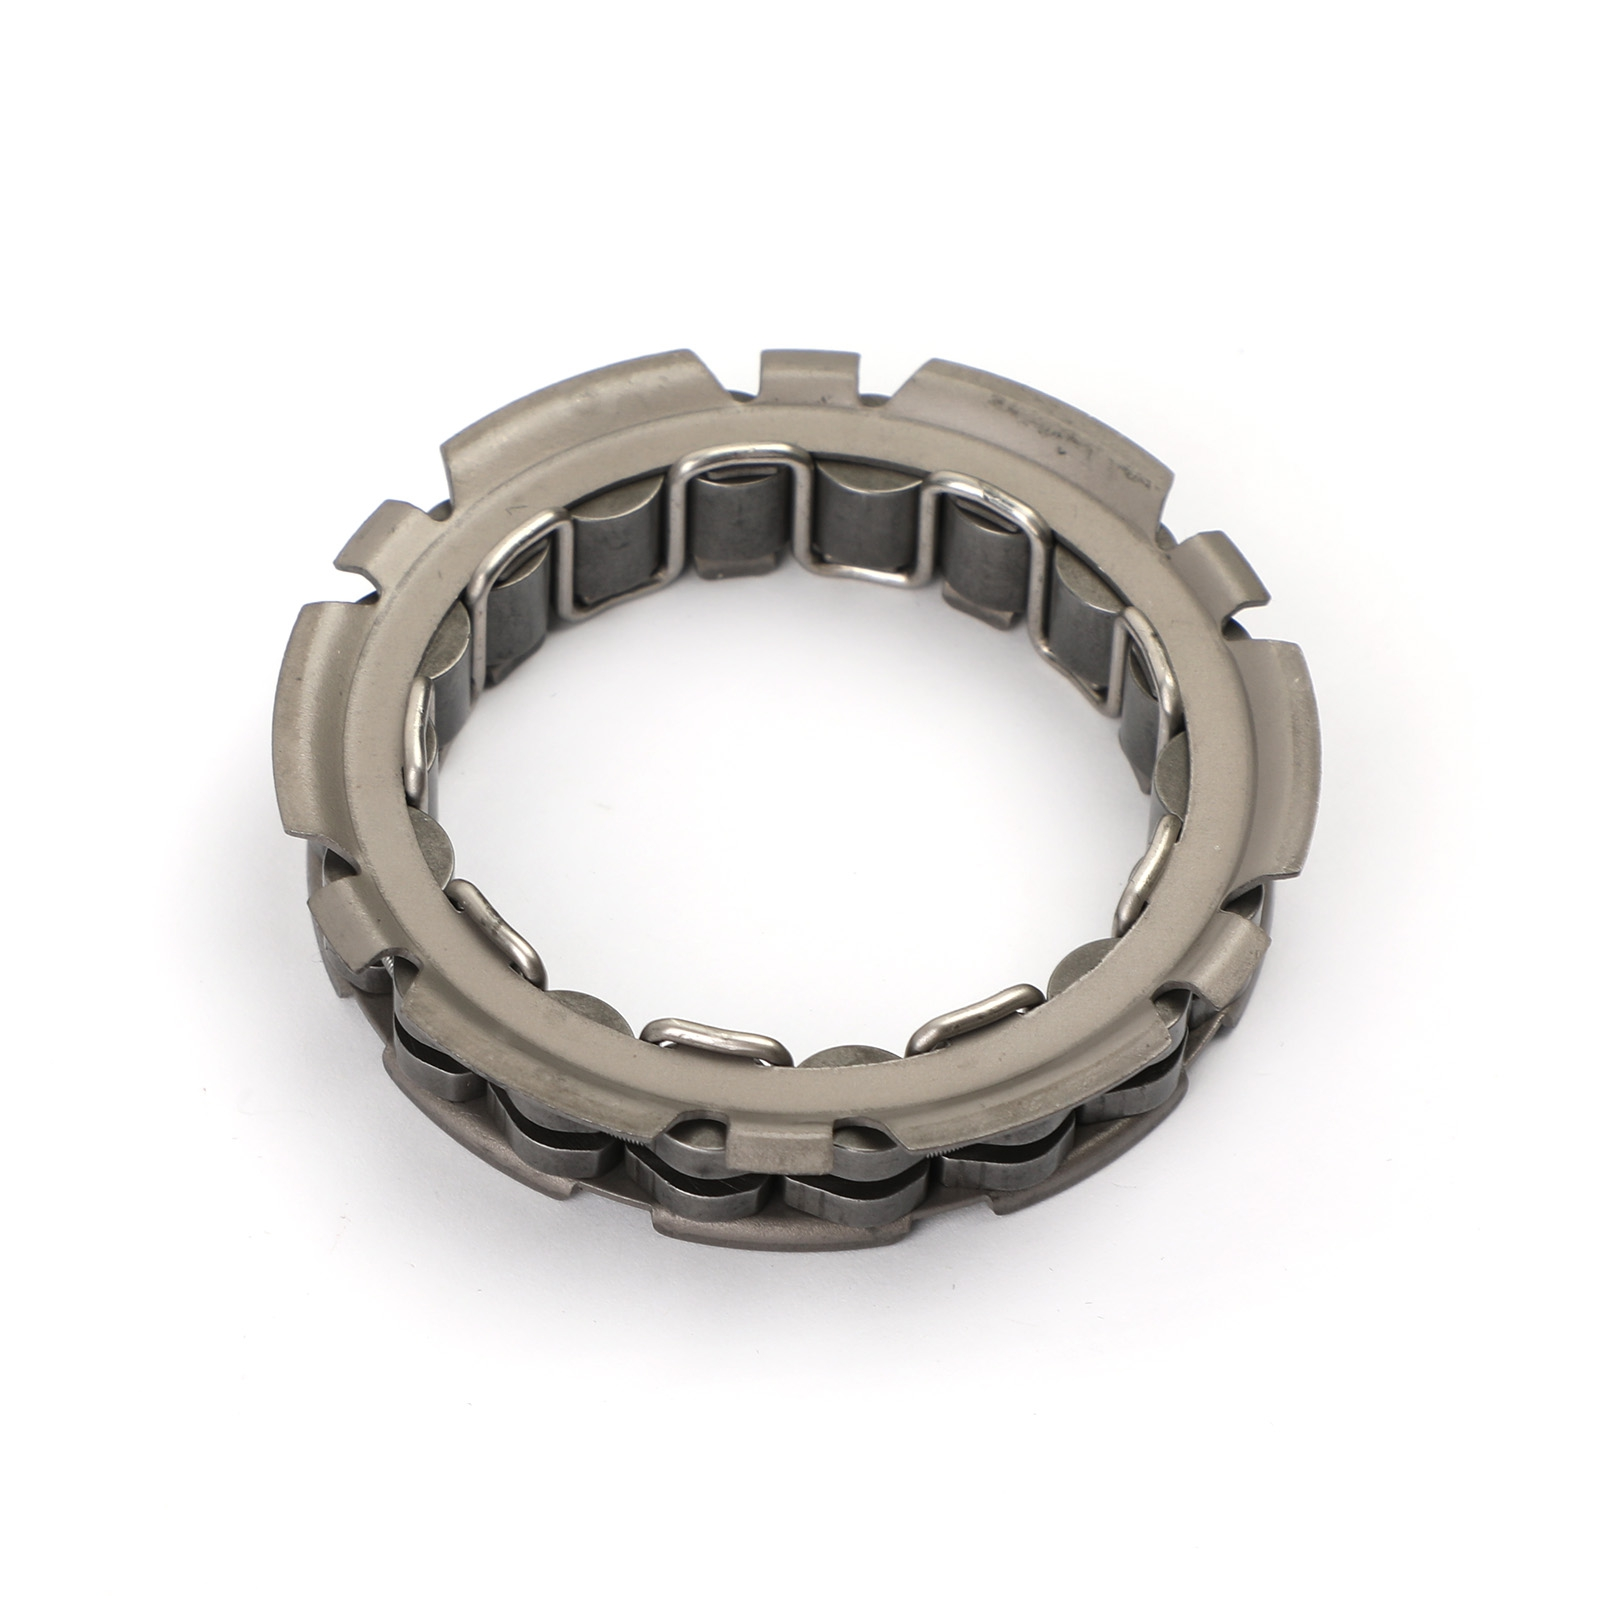 STARTER CLUTCH SPRAG ONE WAY BEARING FOR SUZUKI QUADSPORT 400 LT-Z400Z 2003-2014